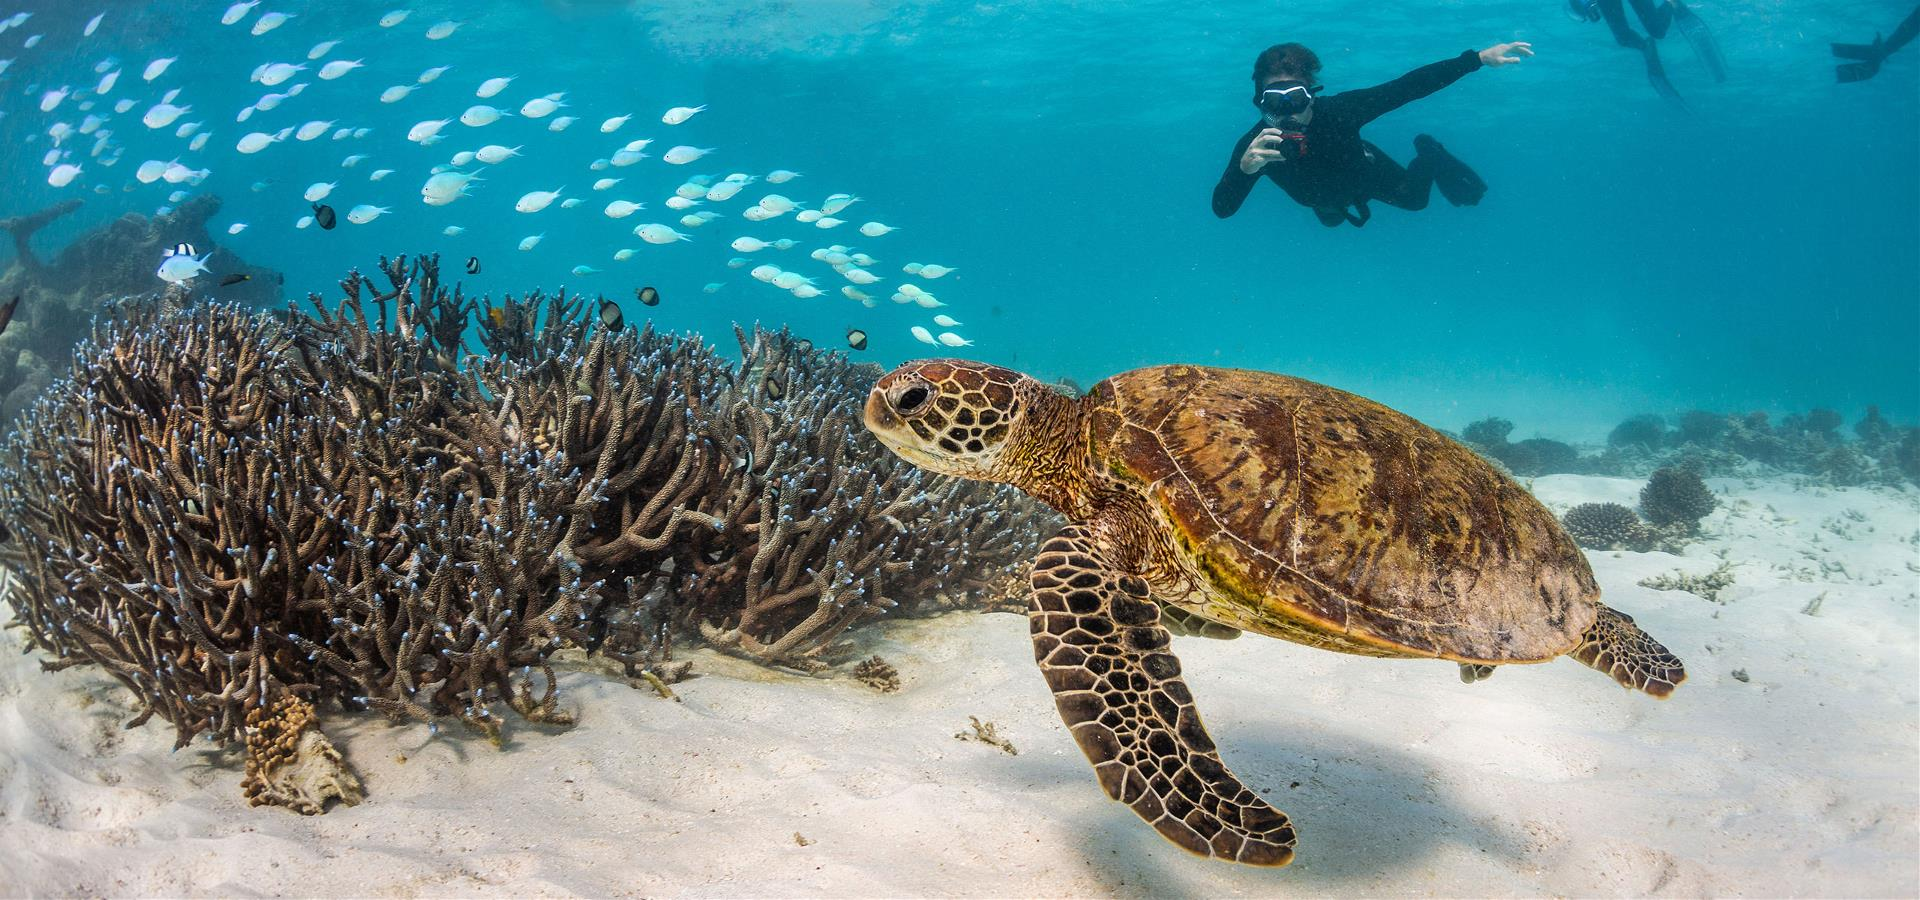 Murdoch students diving with giant turtle